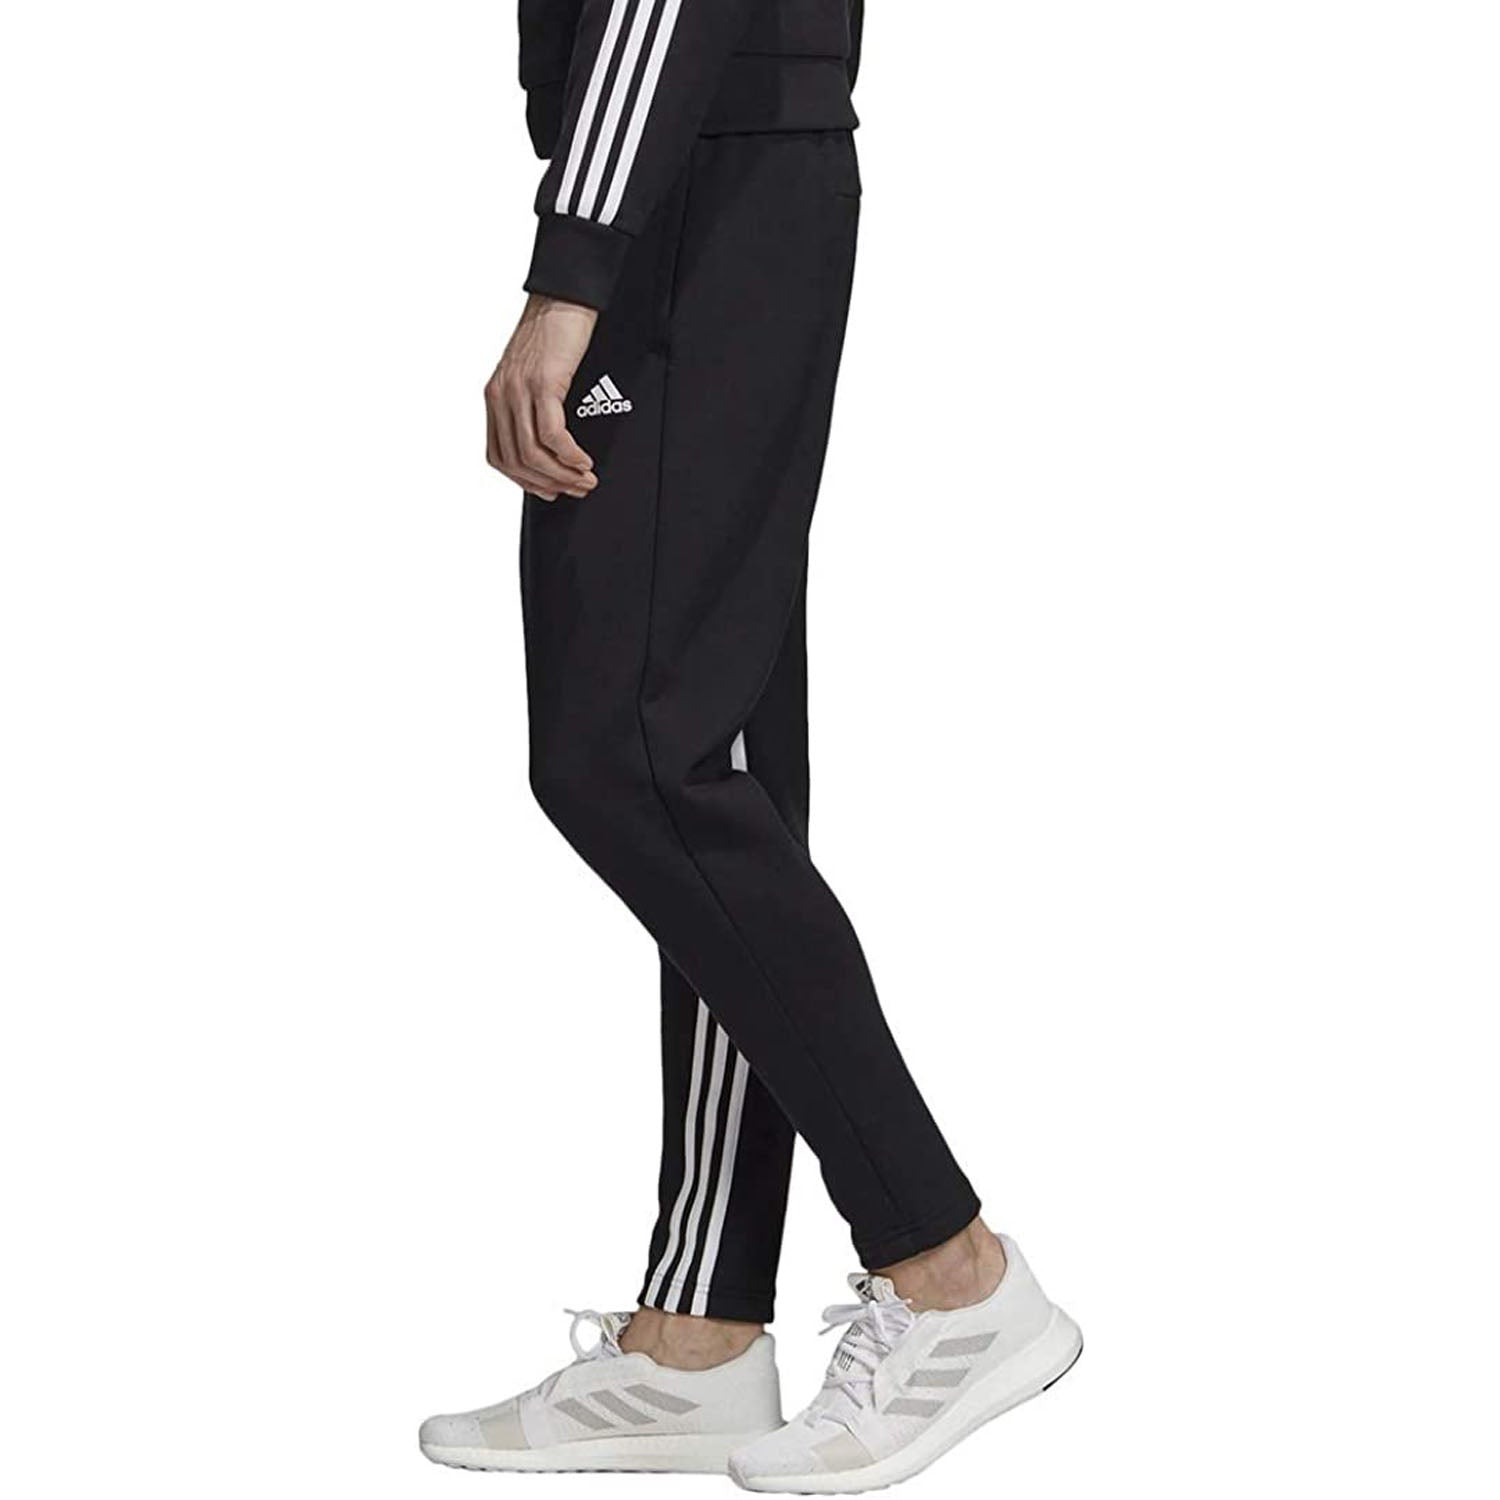 adidas Men's Must Haves 3-Stripes Tapered Pants